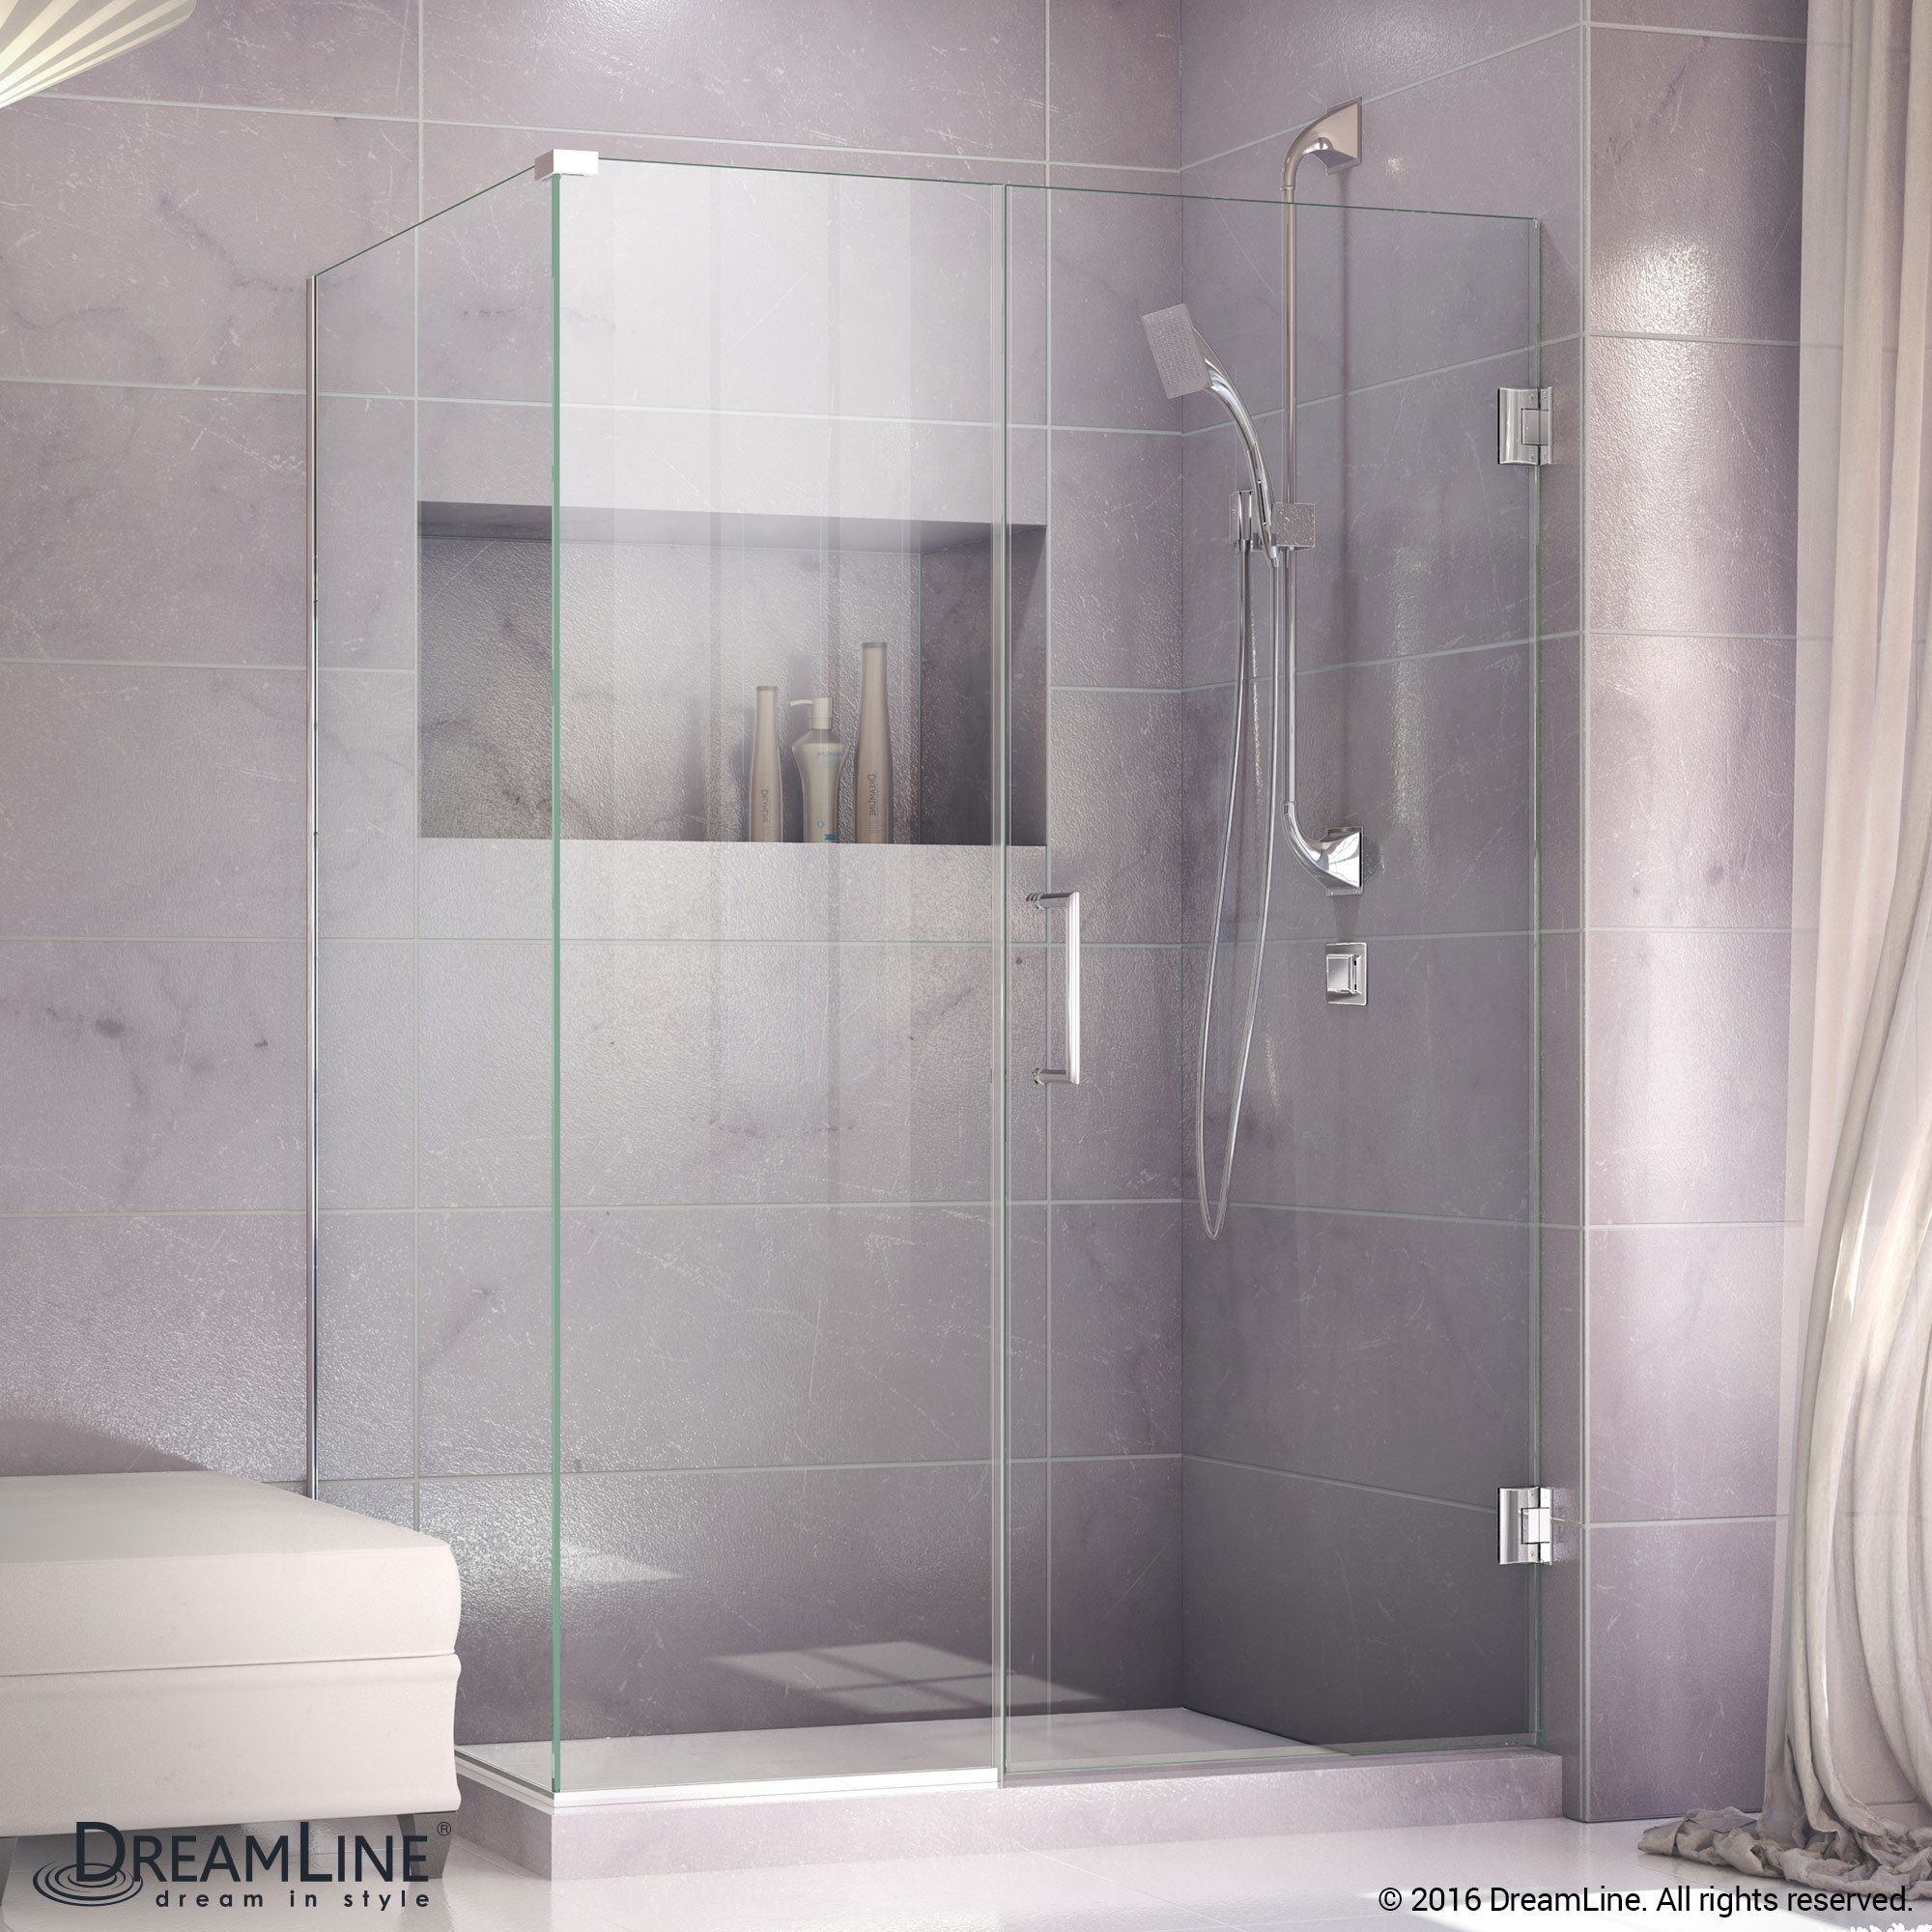 DreamLine SHEN-24360340-01 Unidoor Plus Hinged Shower Enclosure In Chrome Finish Hardware